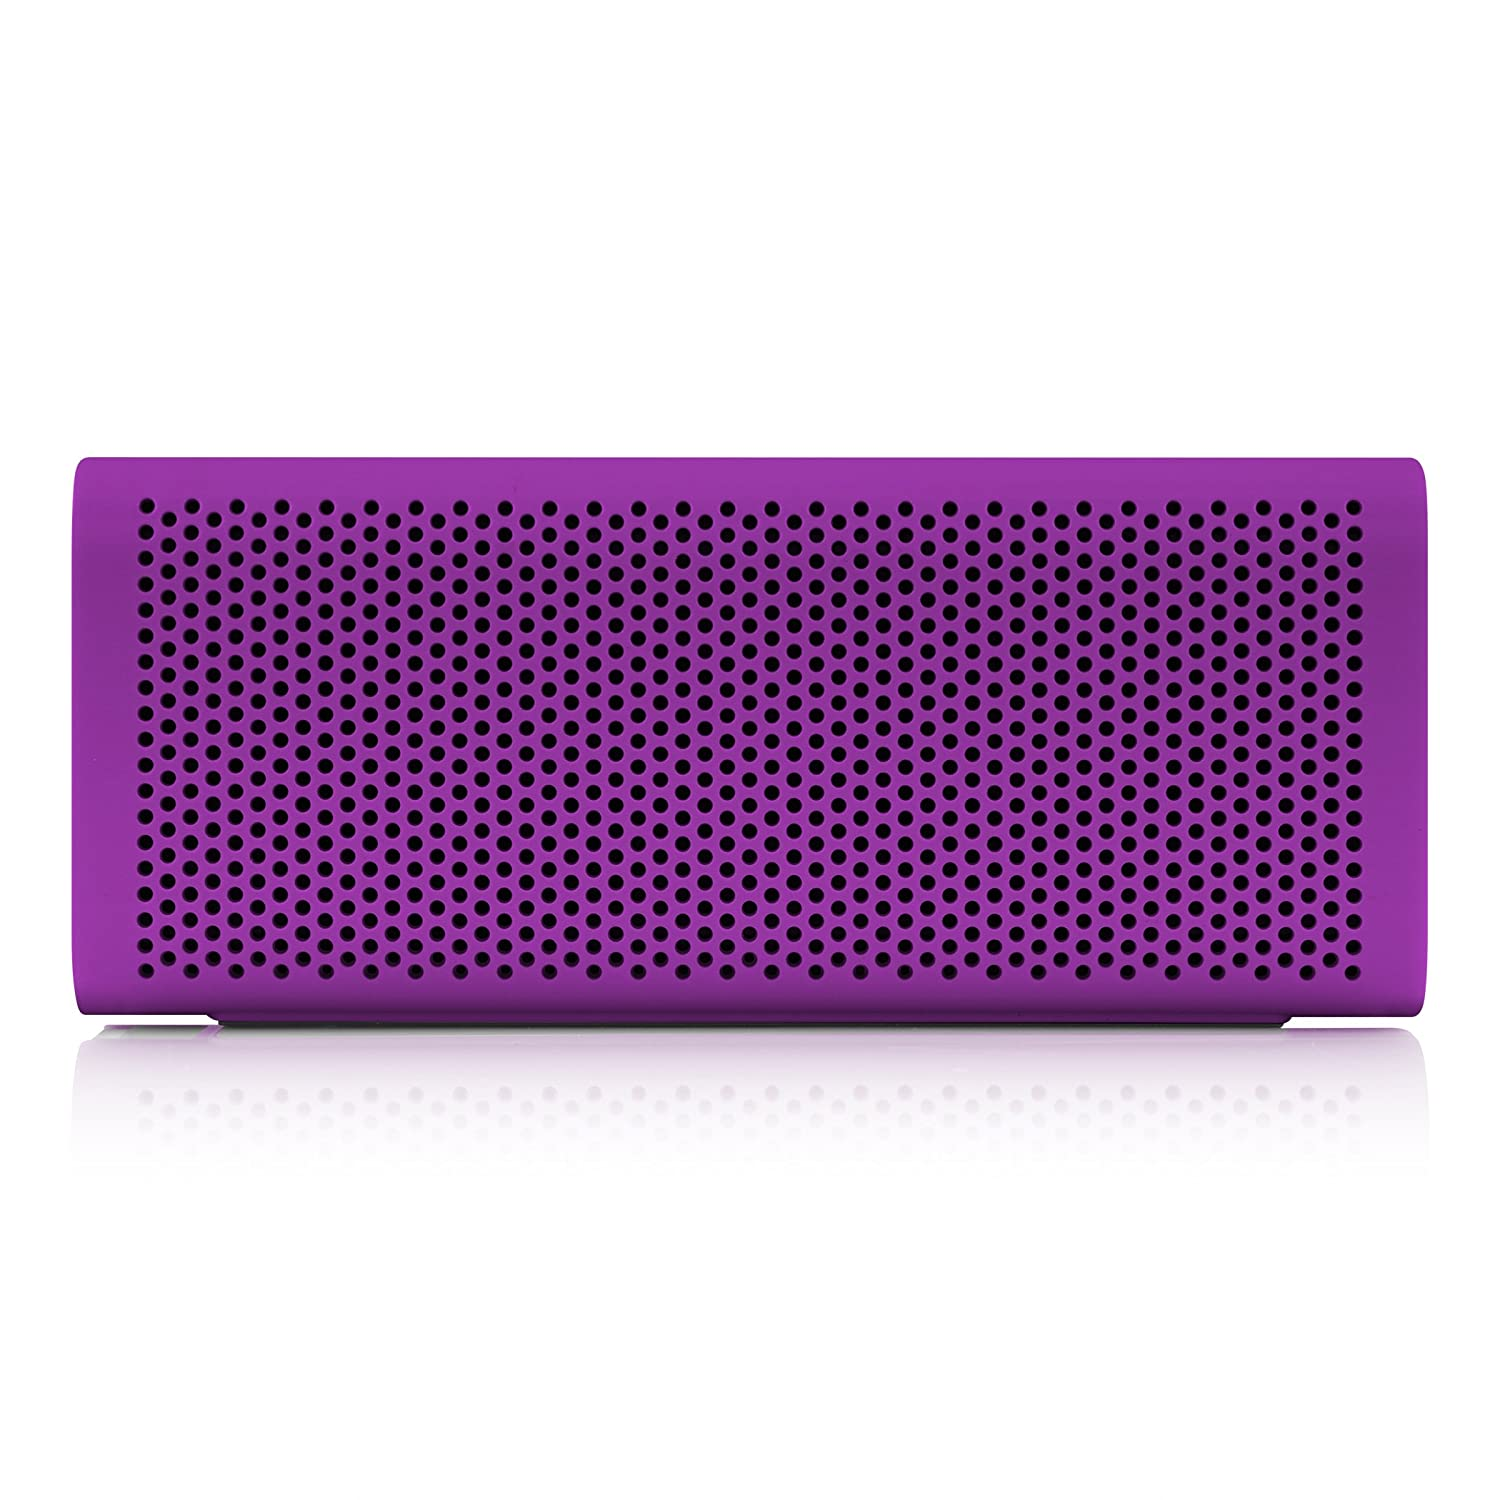 BRAVEN 705 Portable Wireless Bluetooth Speaker 12 Hours Water Resistant Built-in 1400 mAh Power Bank Charger – Purple